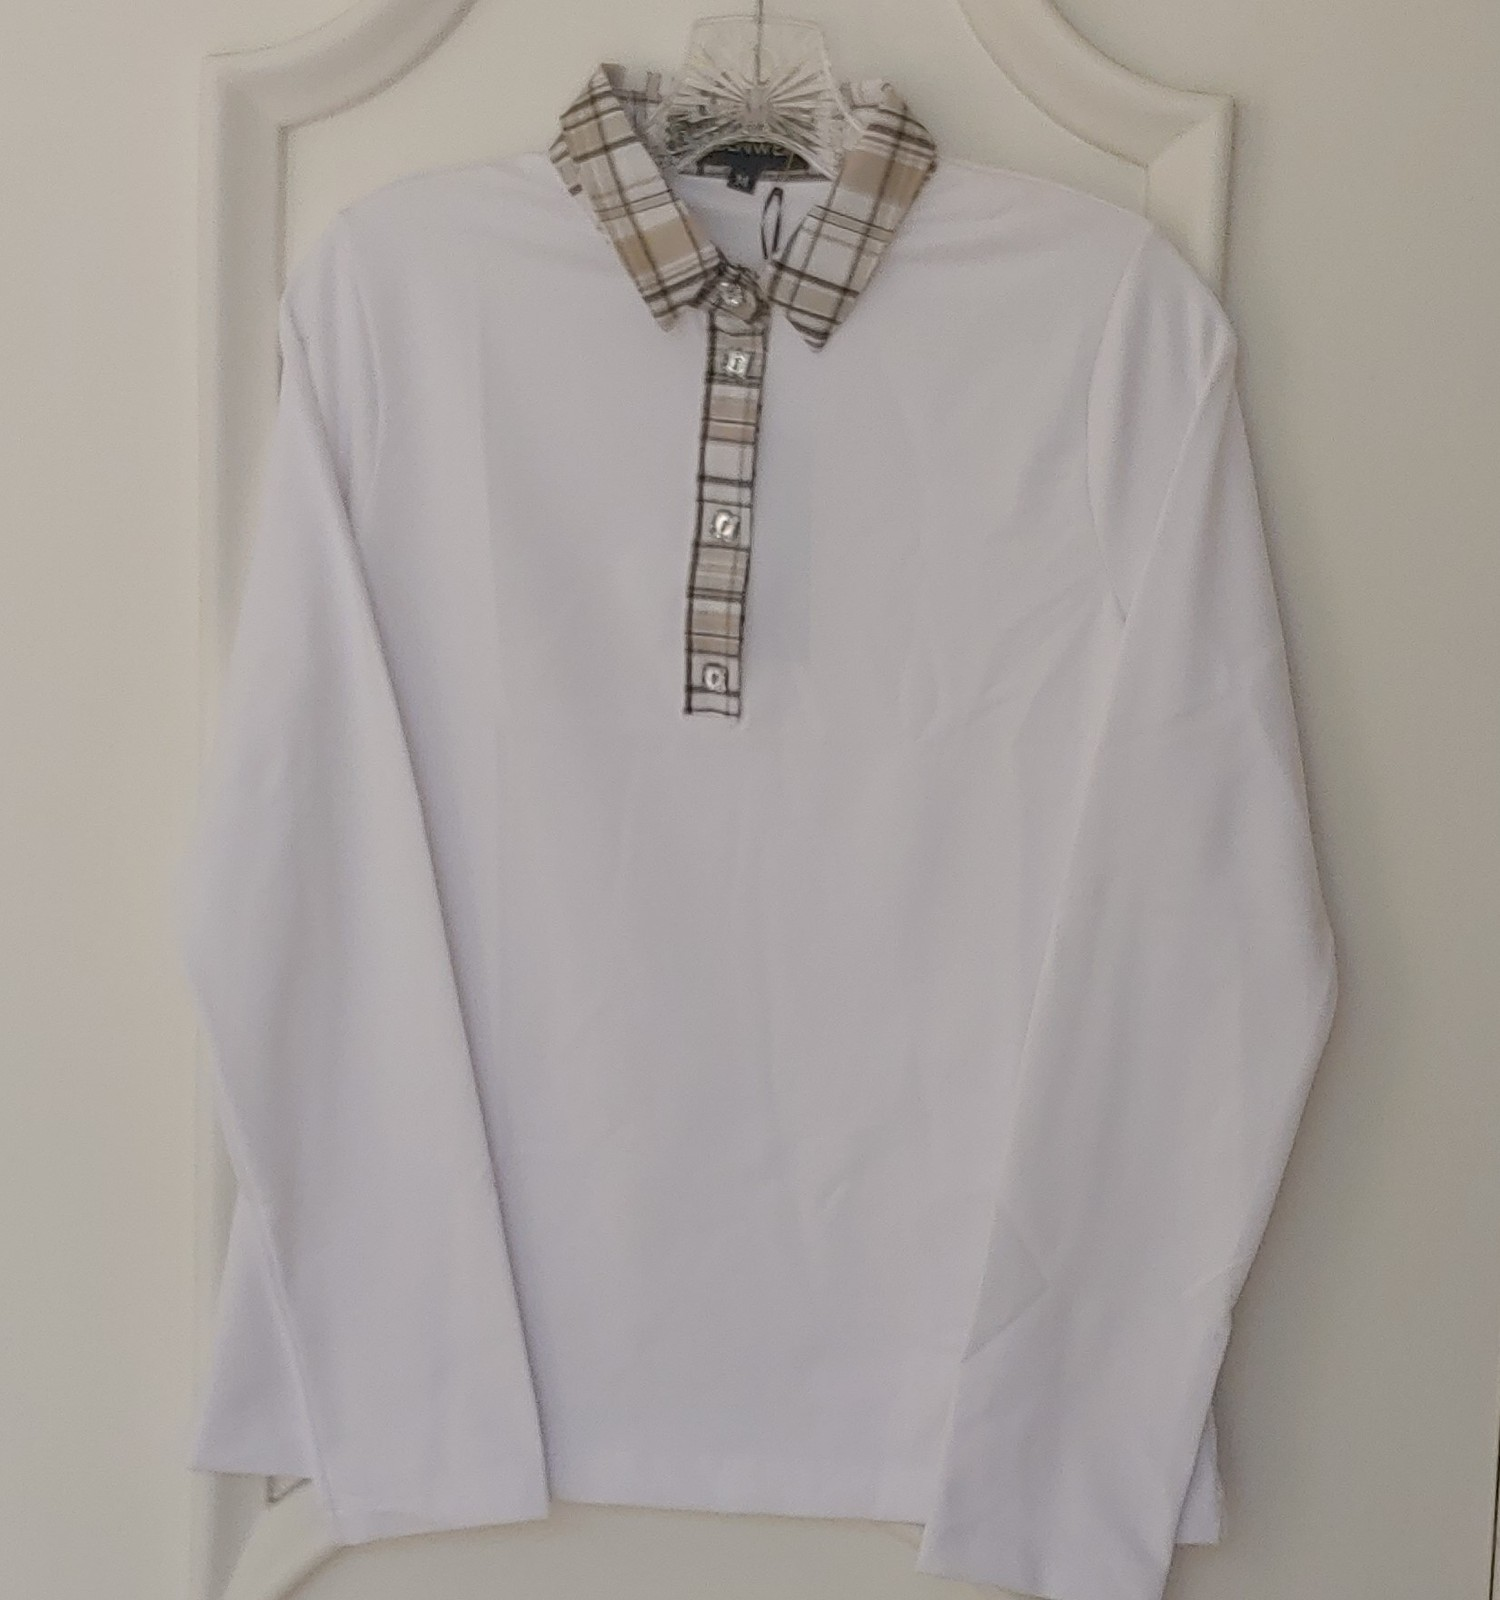 Stylish Women's Golf & Casual White Long Sleeve Collar Top, Swarovski Buttons